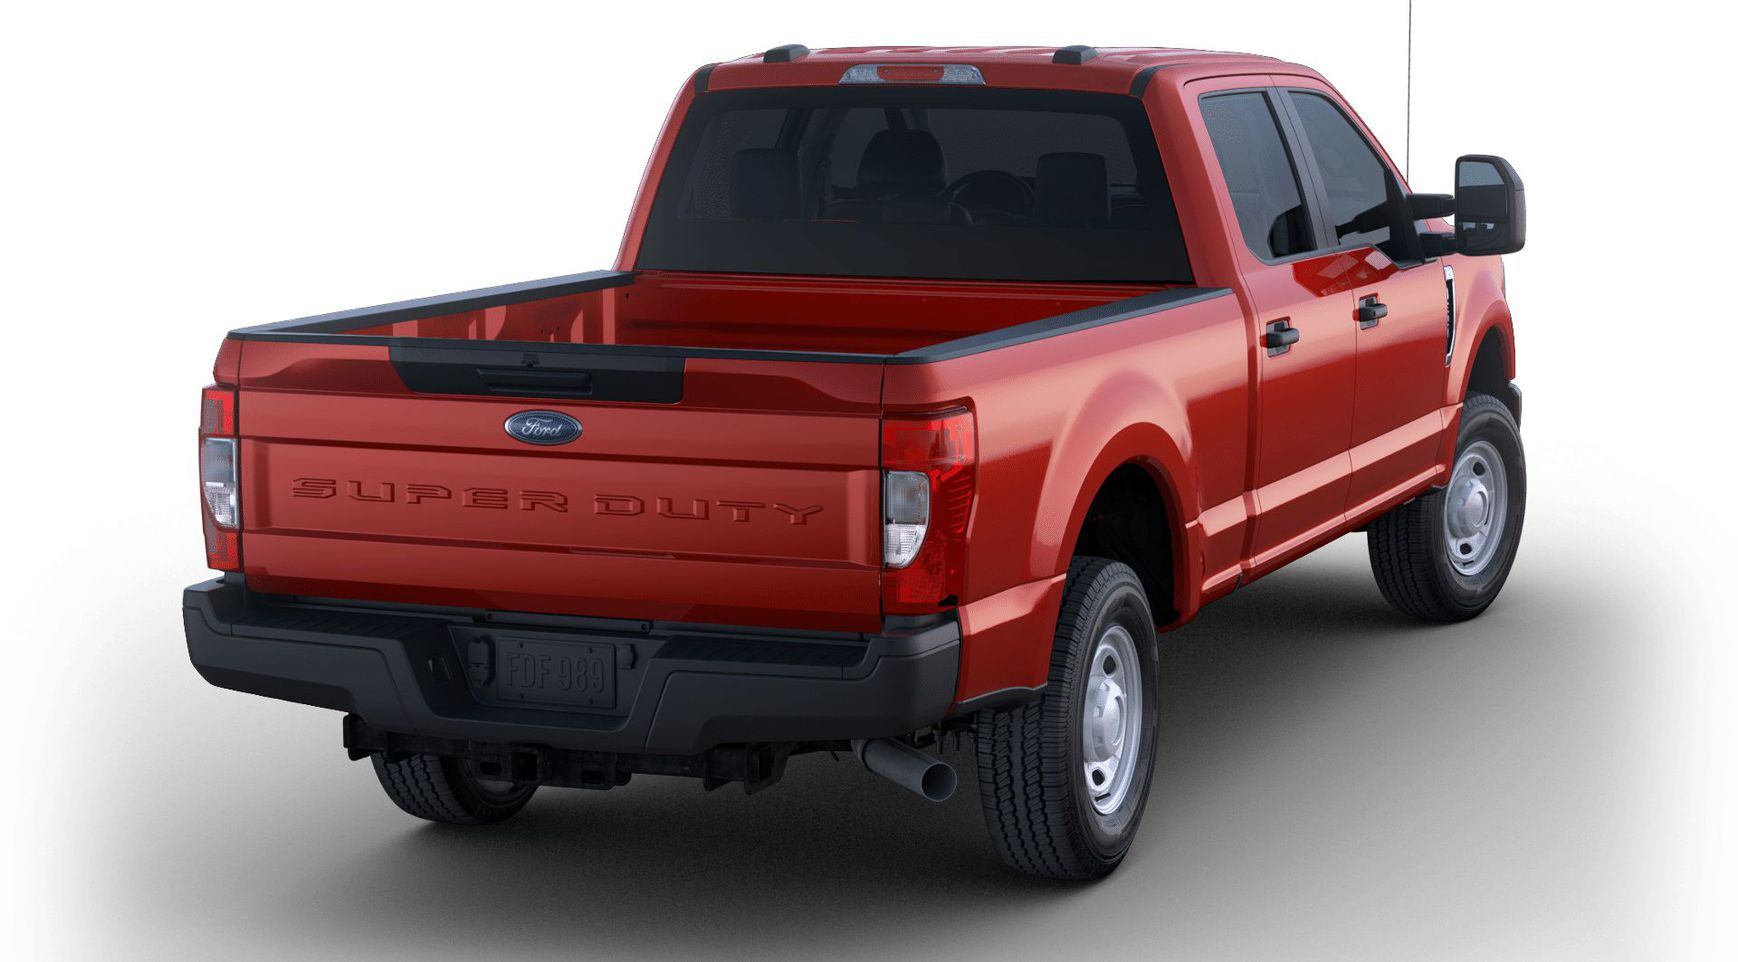 Ford F-350 2020 XL 6.7 V8 OHV Power Stroke® Turbo Diesel Дизель 10 ст АКПП Полный